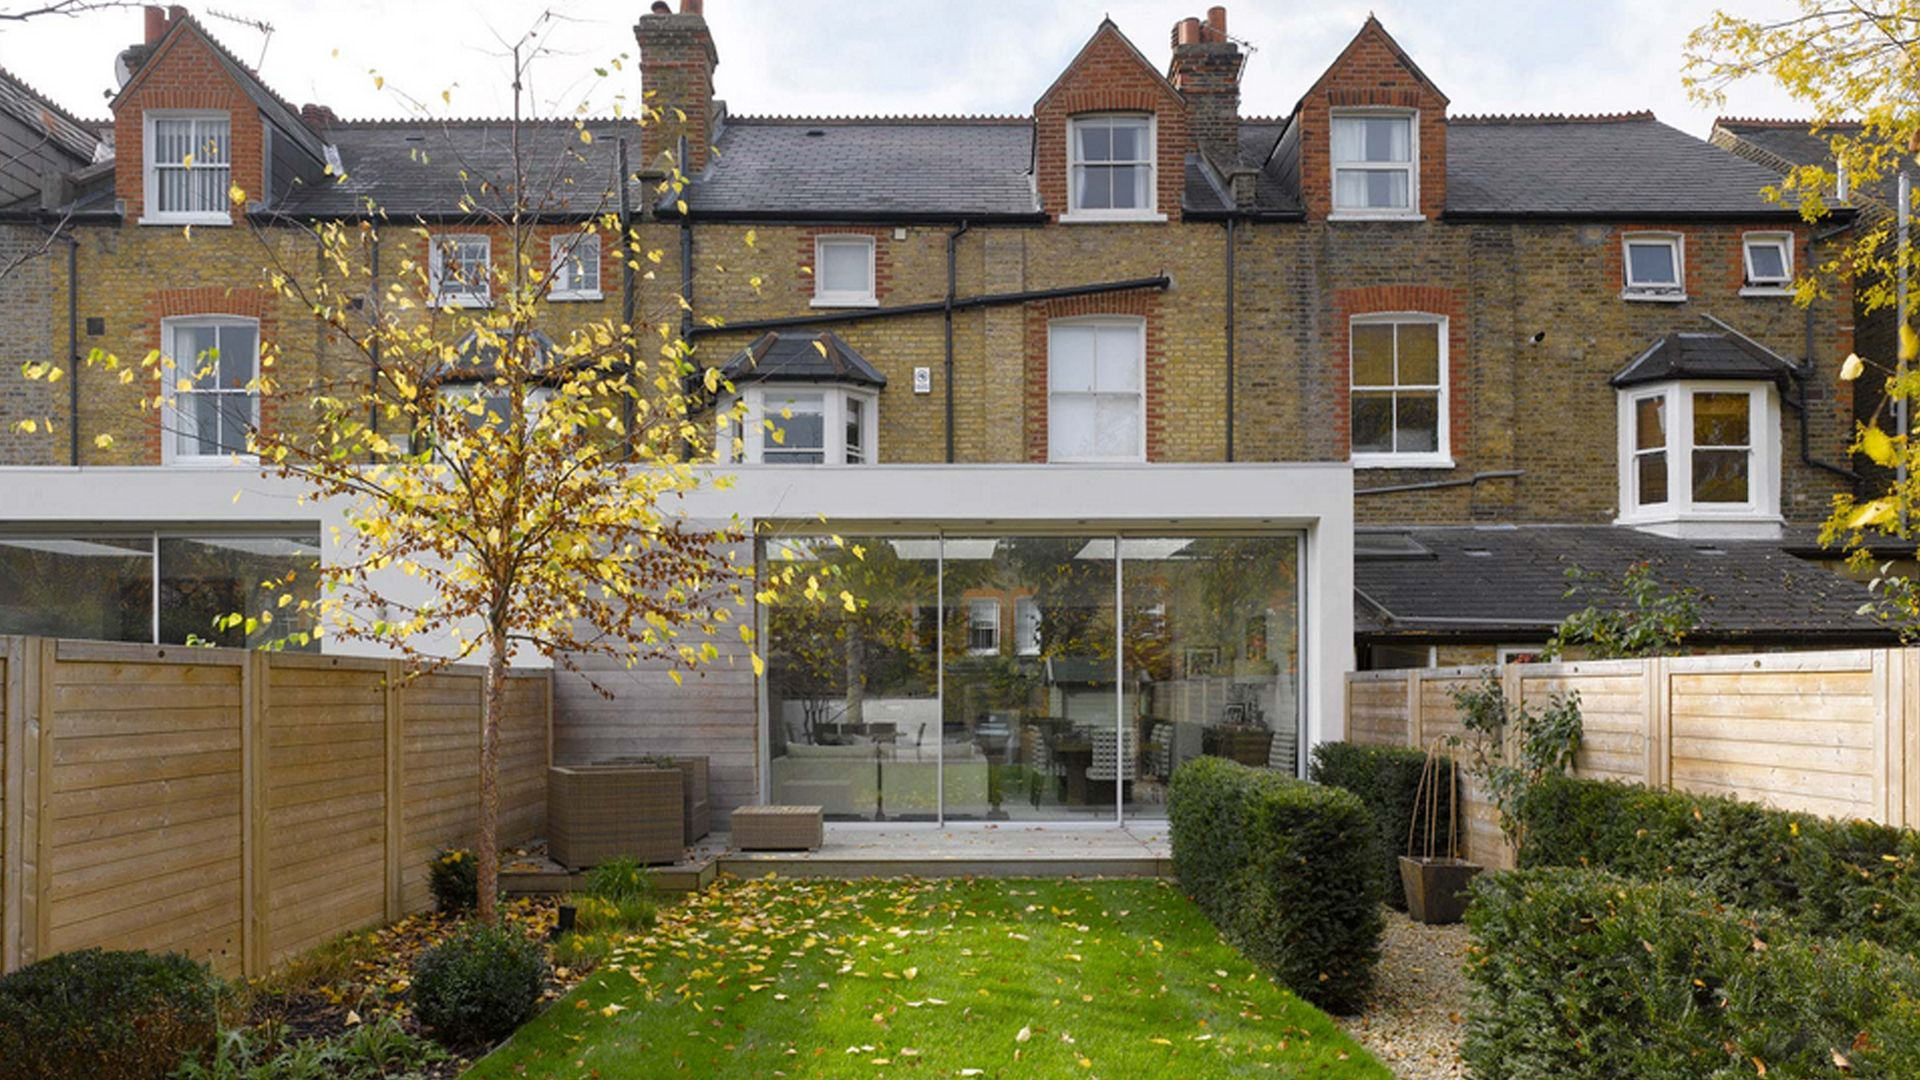 Theedge Ultra Slim Sliding Door Exclusively Manufactured And Installed By Idsystems Sliding Doors Self Build Houses Architect